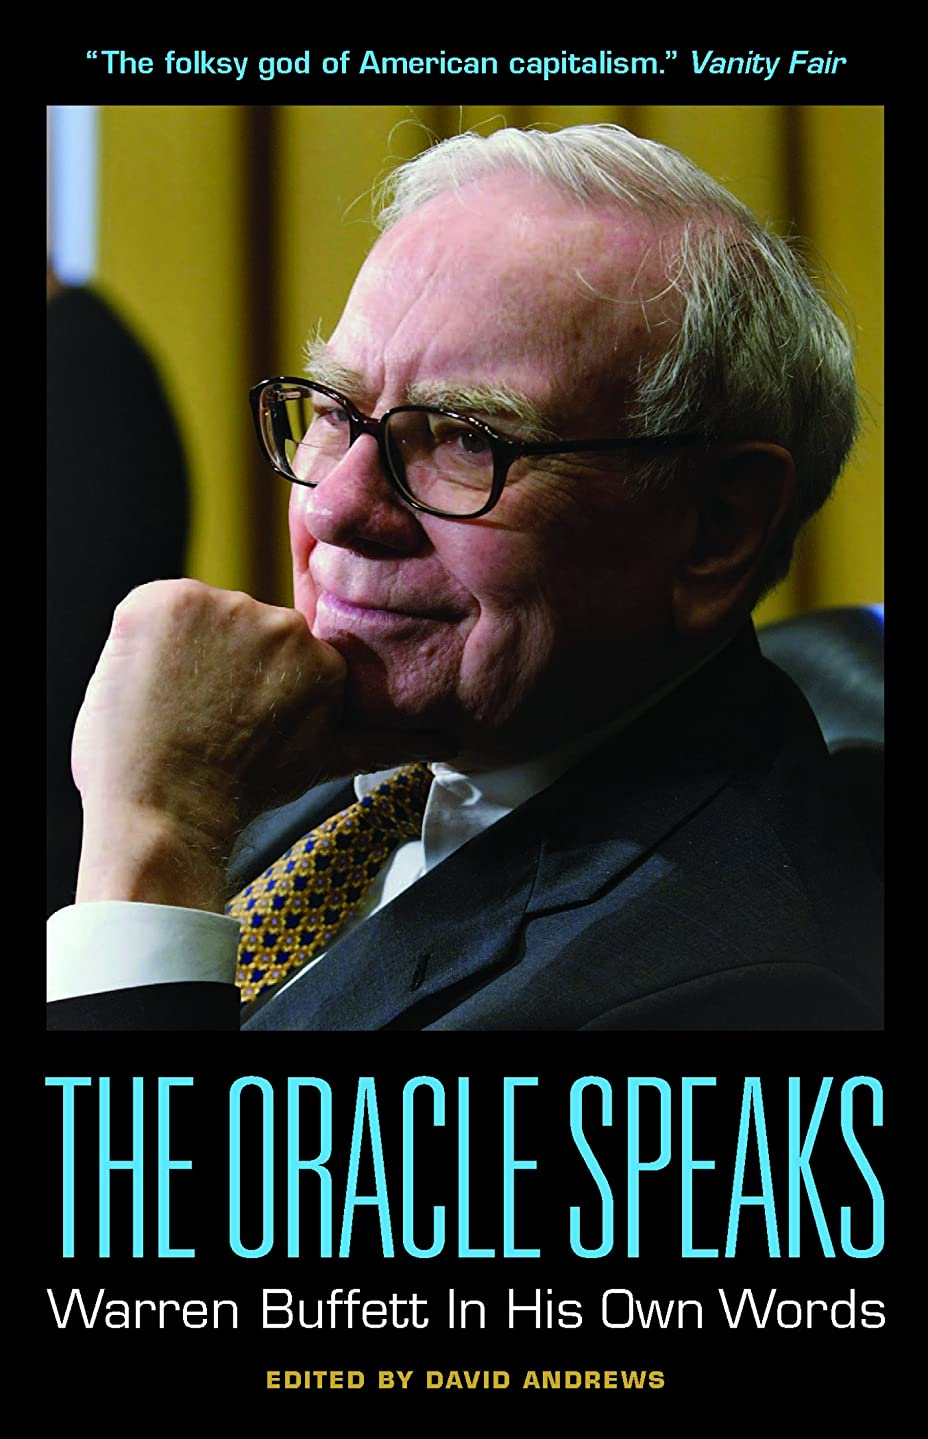 劣る予測子トレースThe Oracle Speaks: Warren Buffett In His Own Words (In Their Own Words) (English Edition)